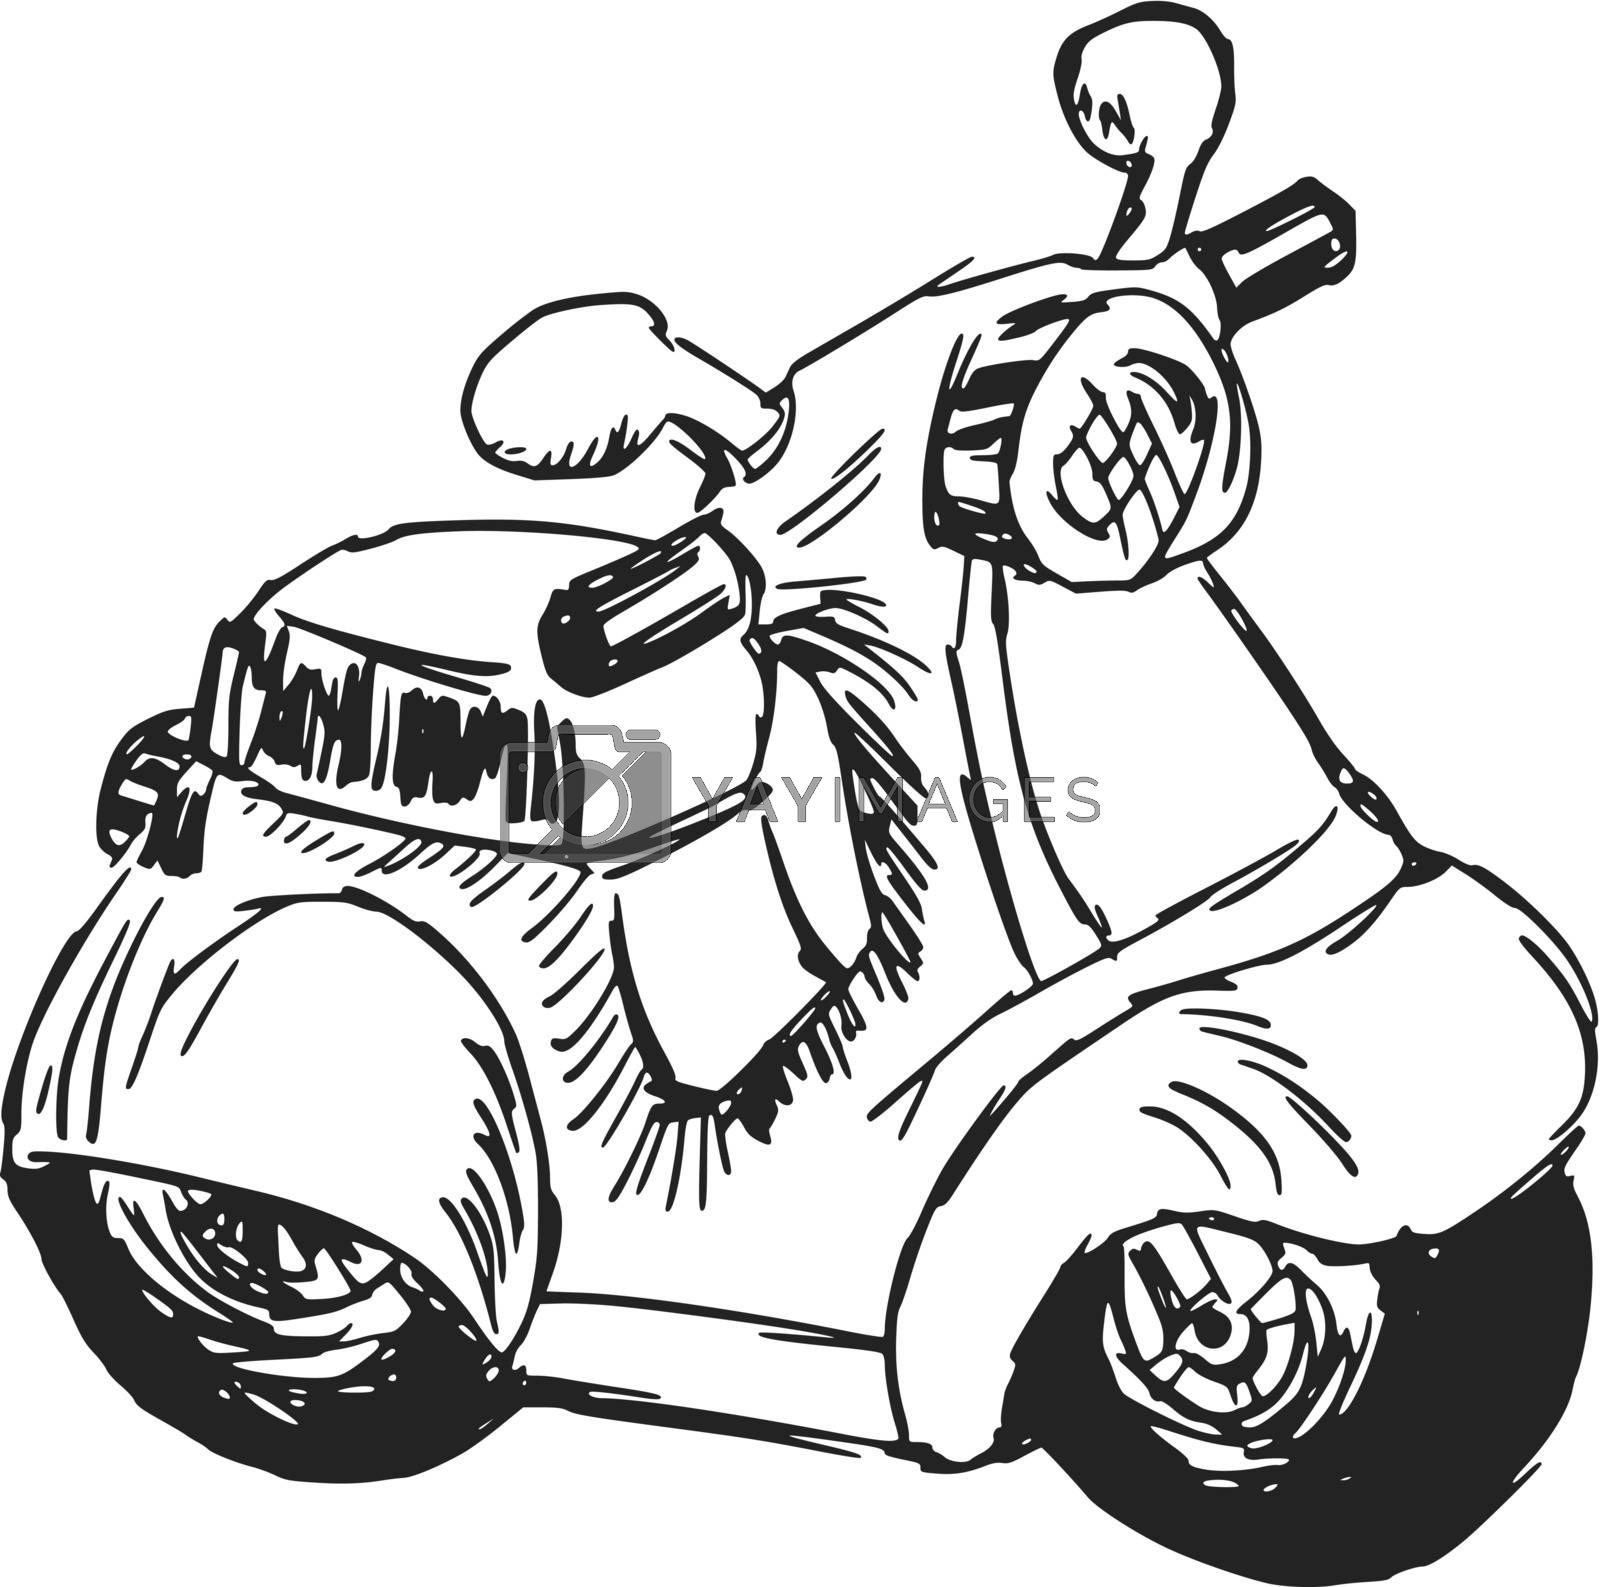 hand drawn, sketch, cartoon illustration of toy scooter